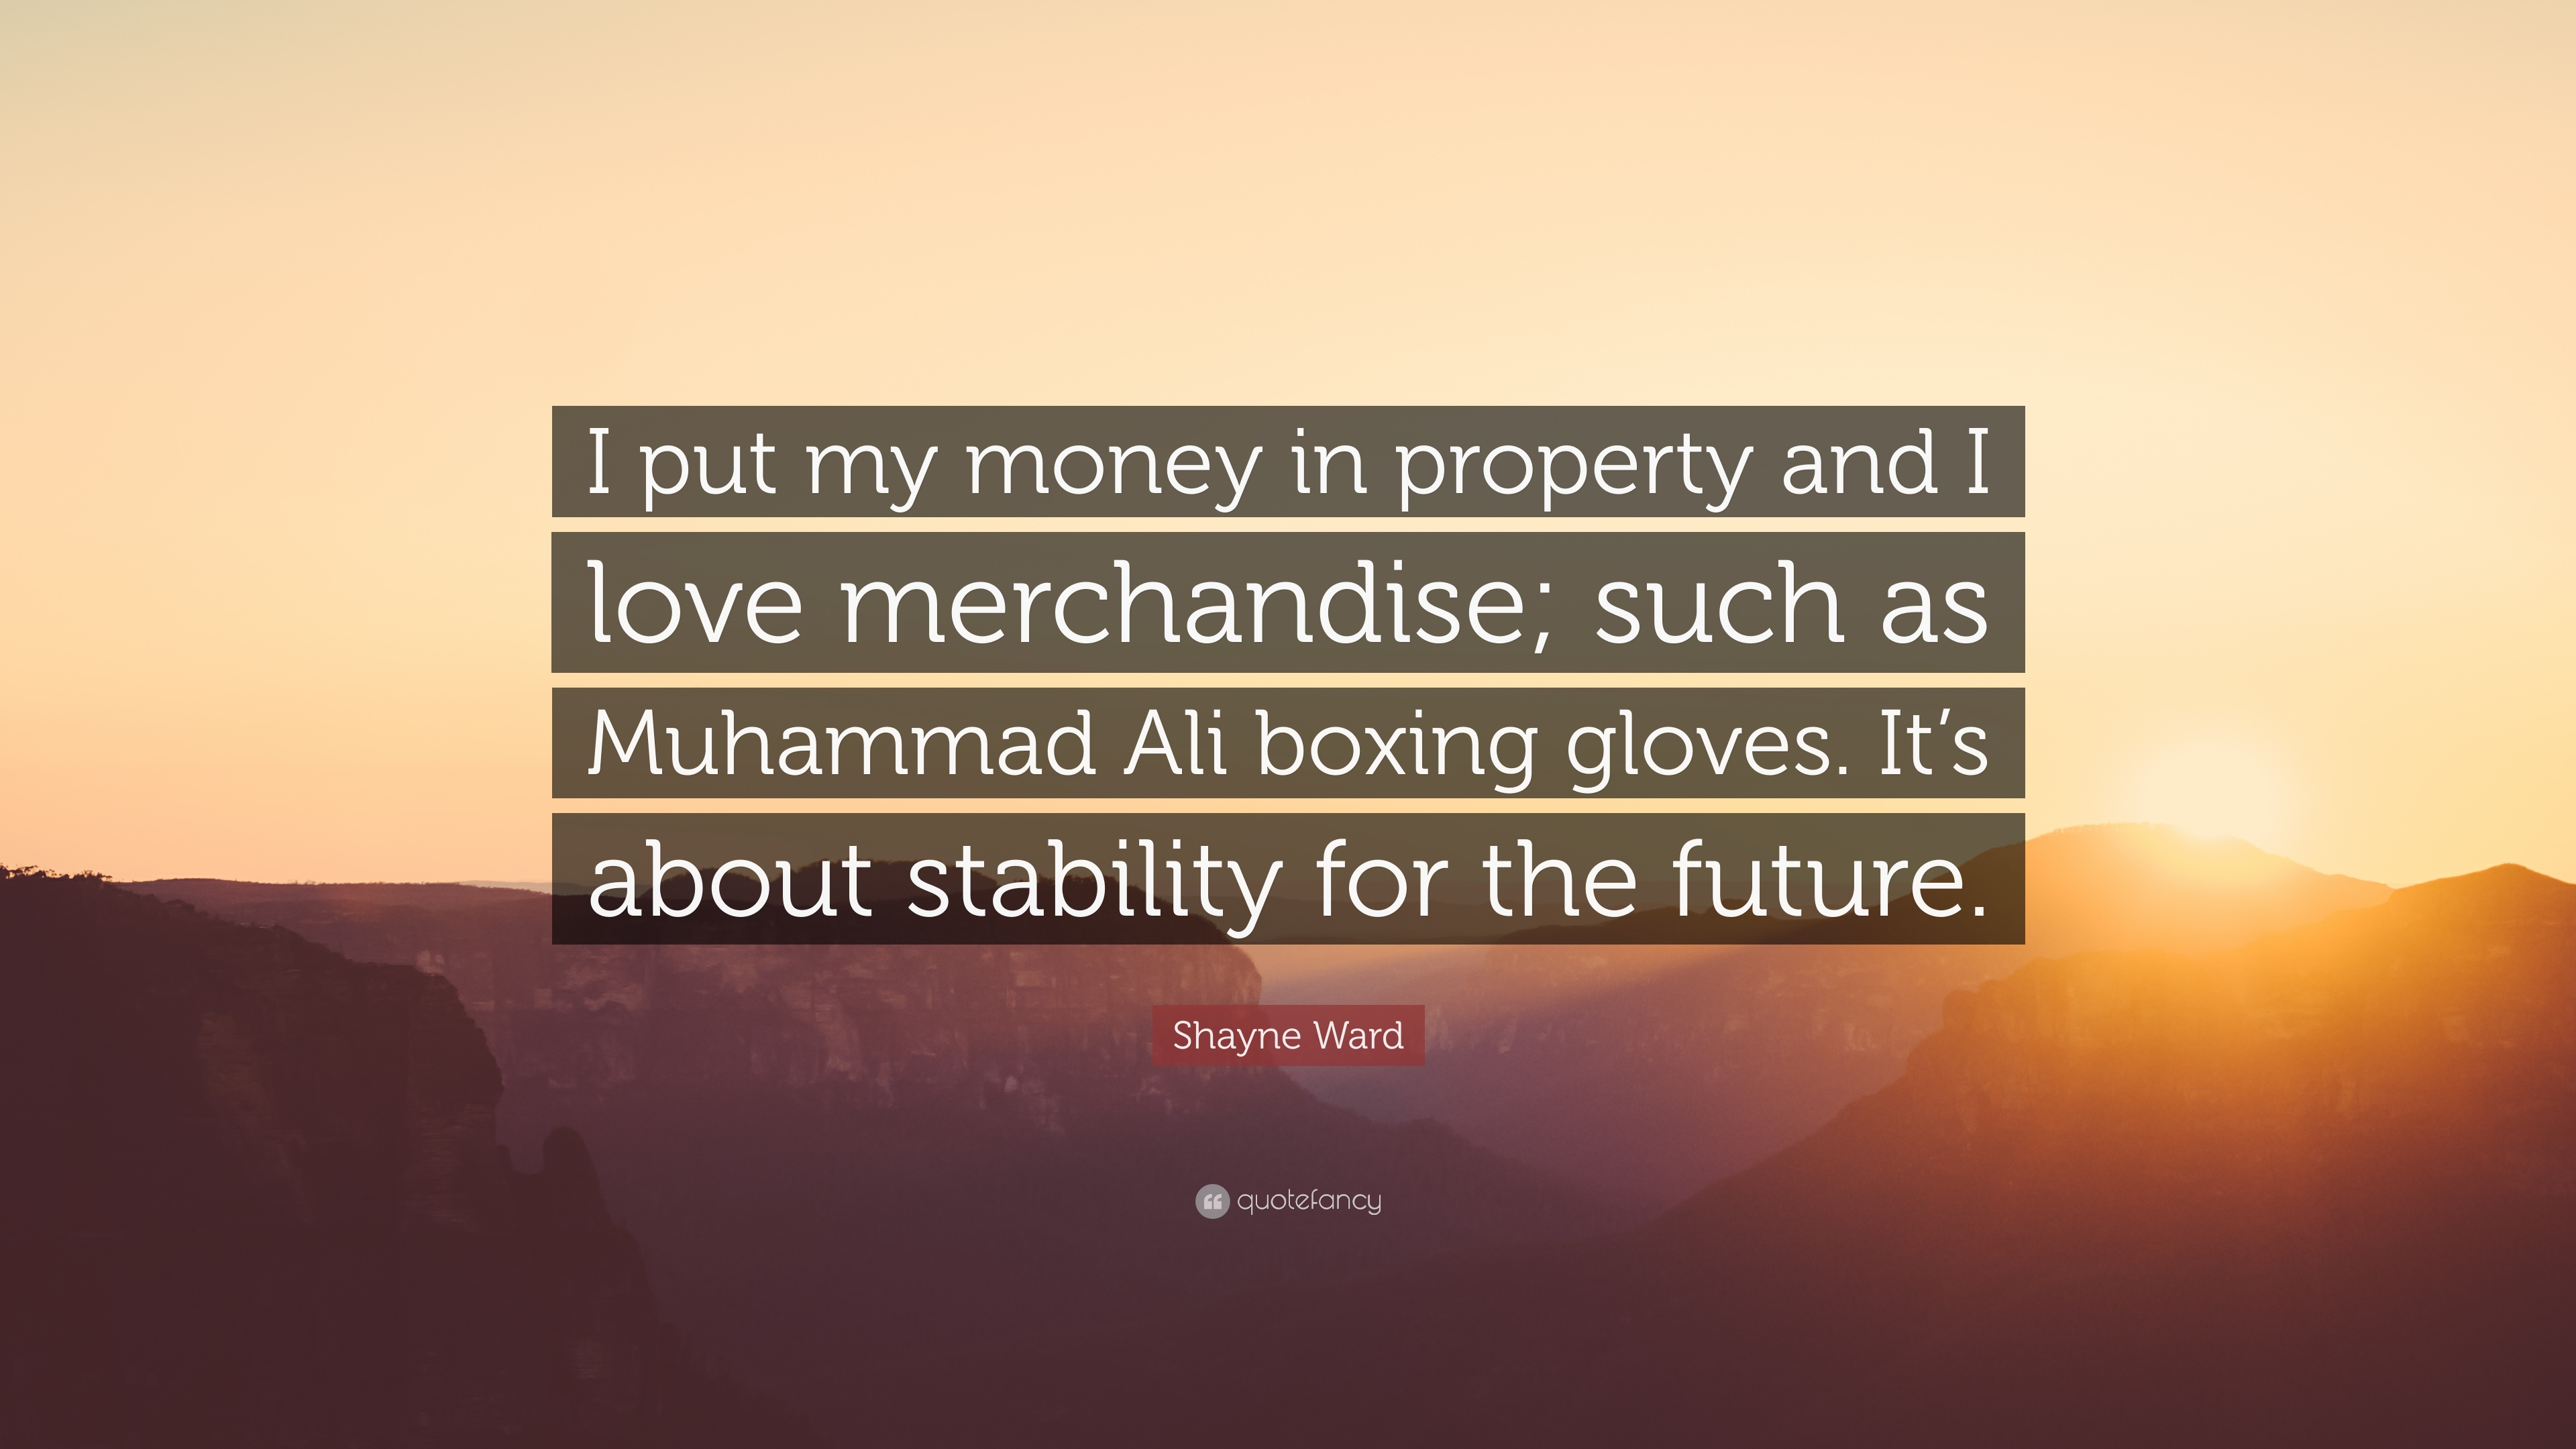 shayne ward quote i put my money in property and i love